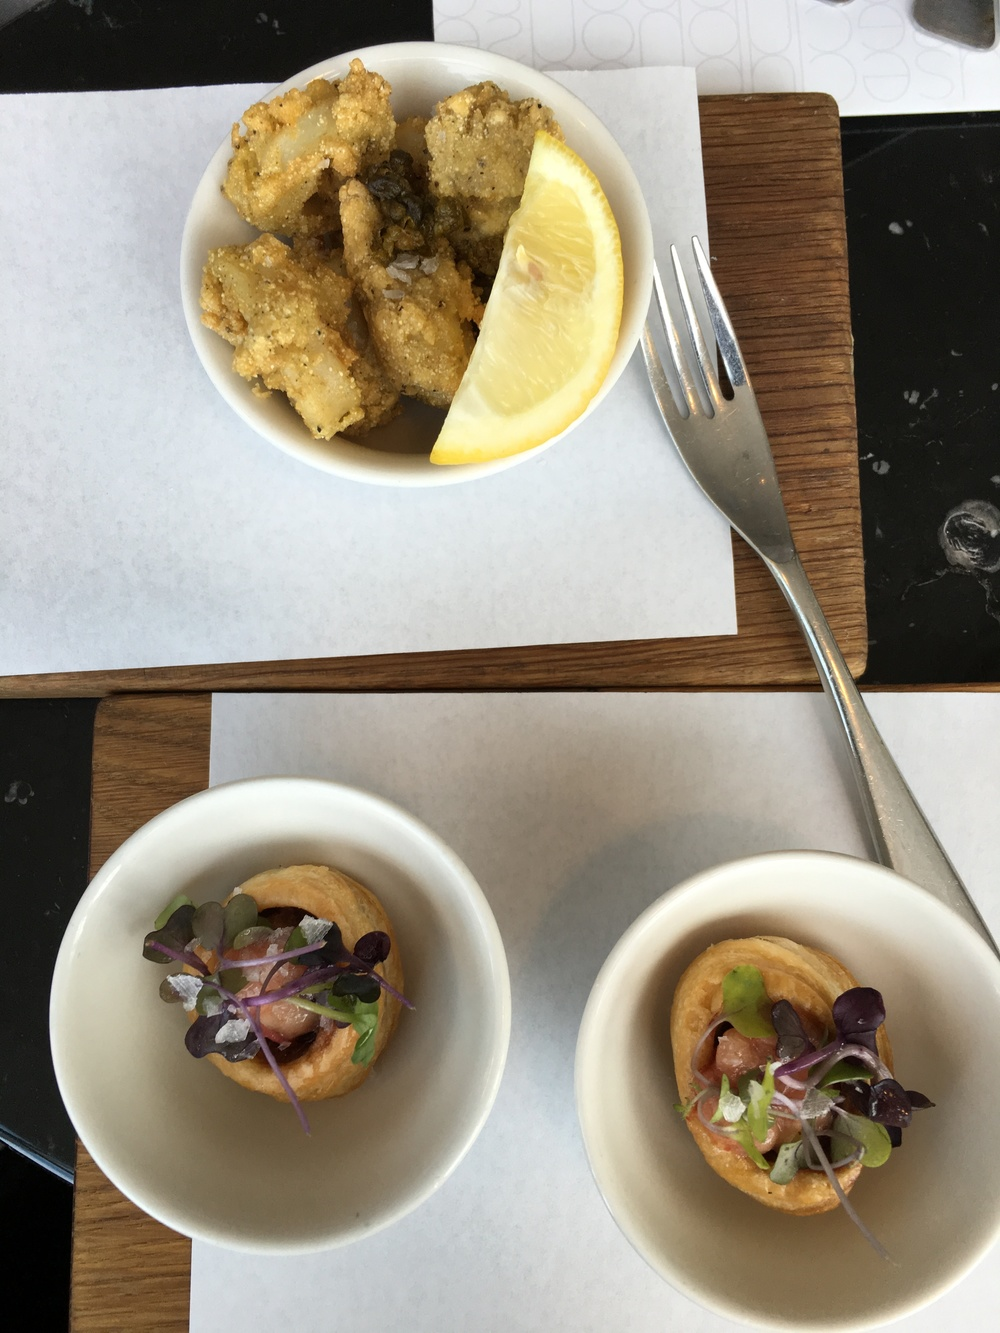 Top: Crispy squid with capers and lemon. Bottom: Bone marrow poppers!